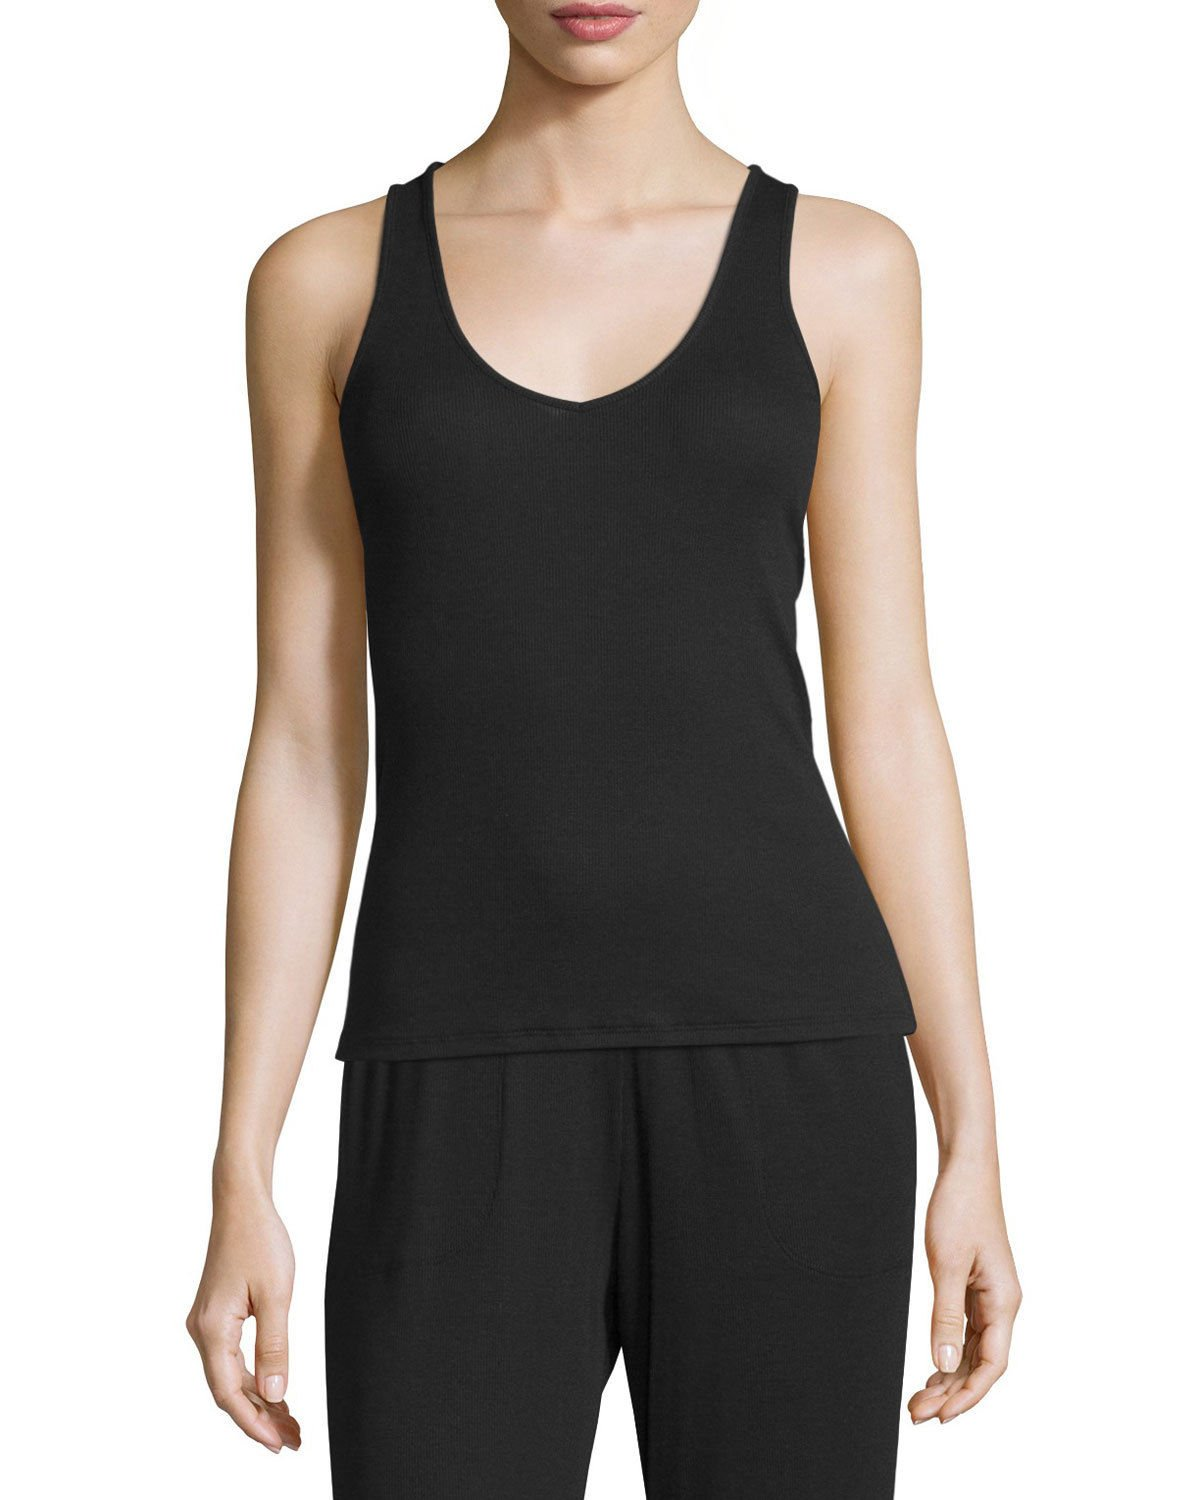 Skin Industries Skin Travel Rib Knit Soft Layer Scoop Neck Tank Top (Medium/Large)